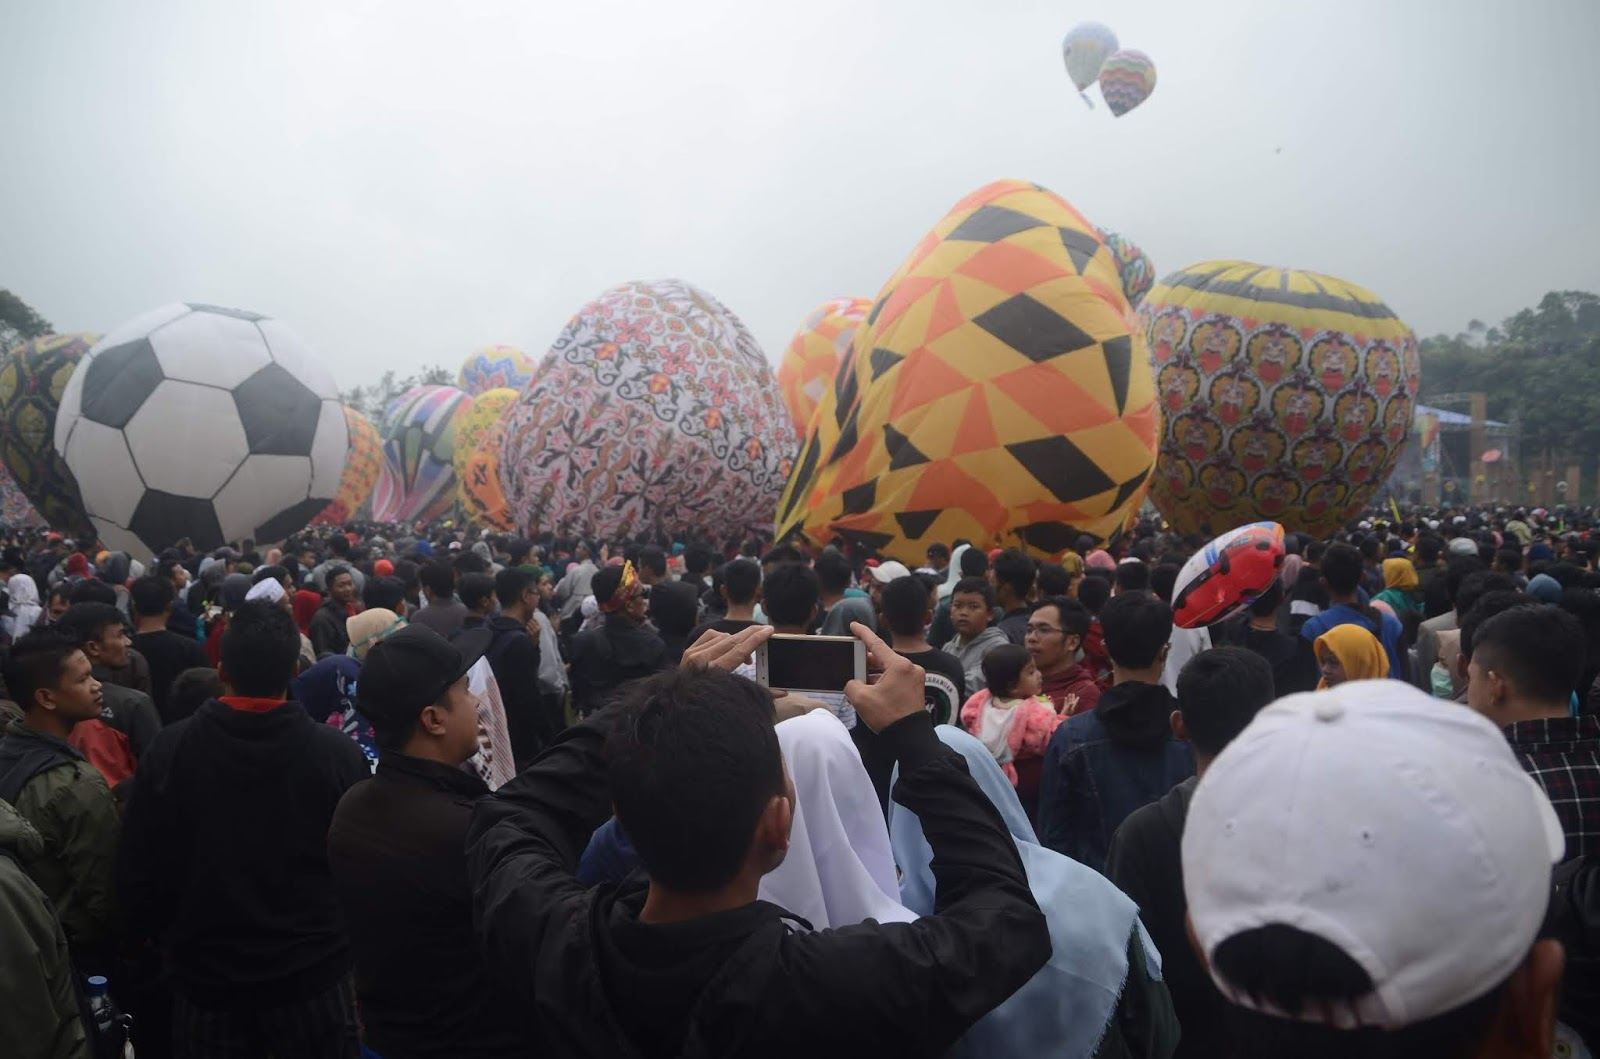 Java Balloon Attraction Terbangkan 119 Balon Di Wonosobo